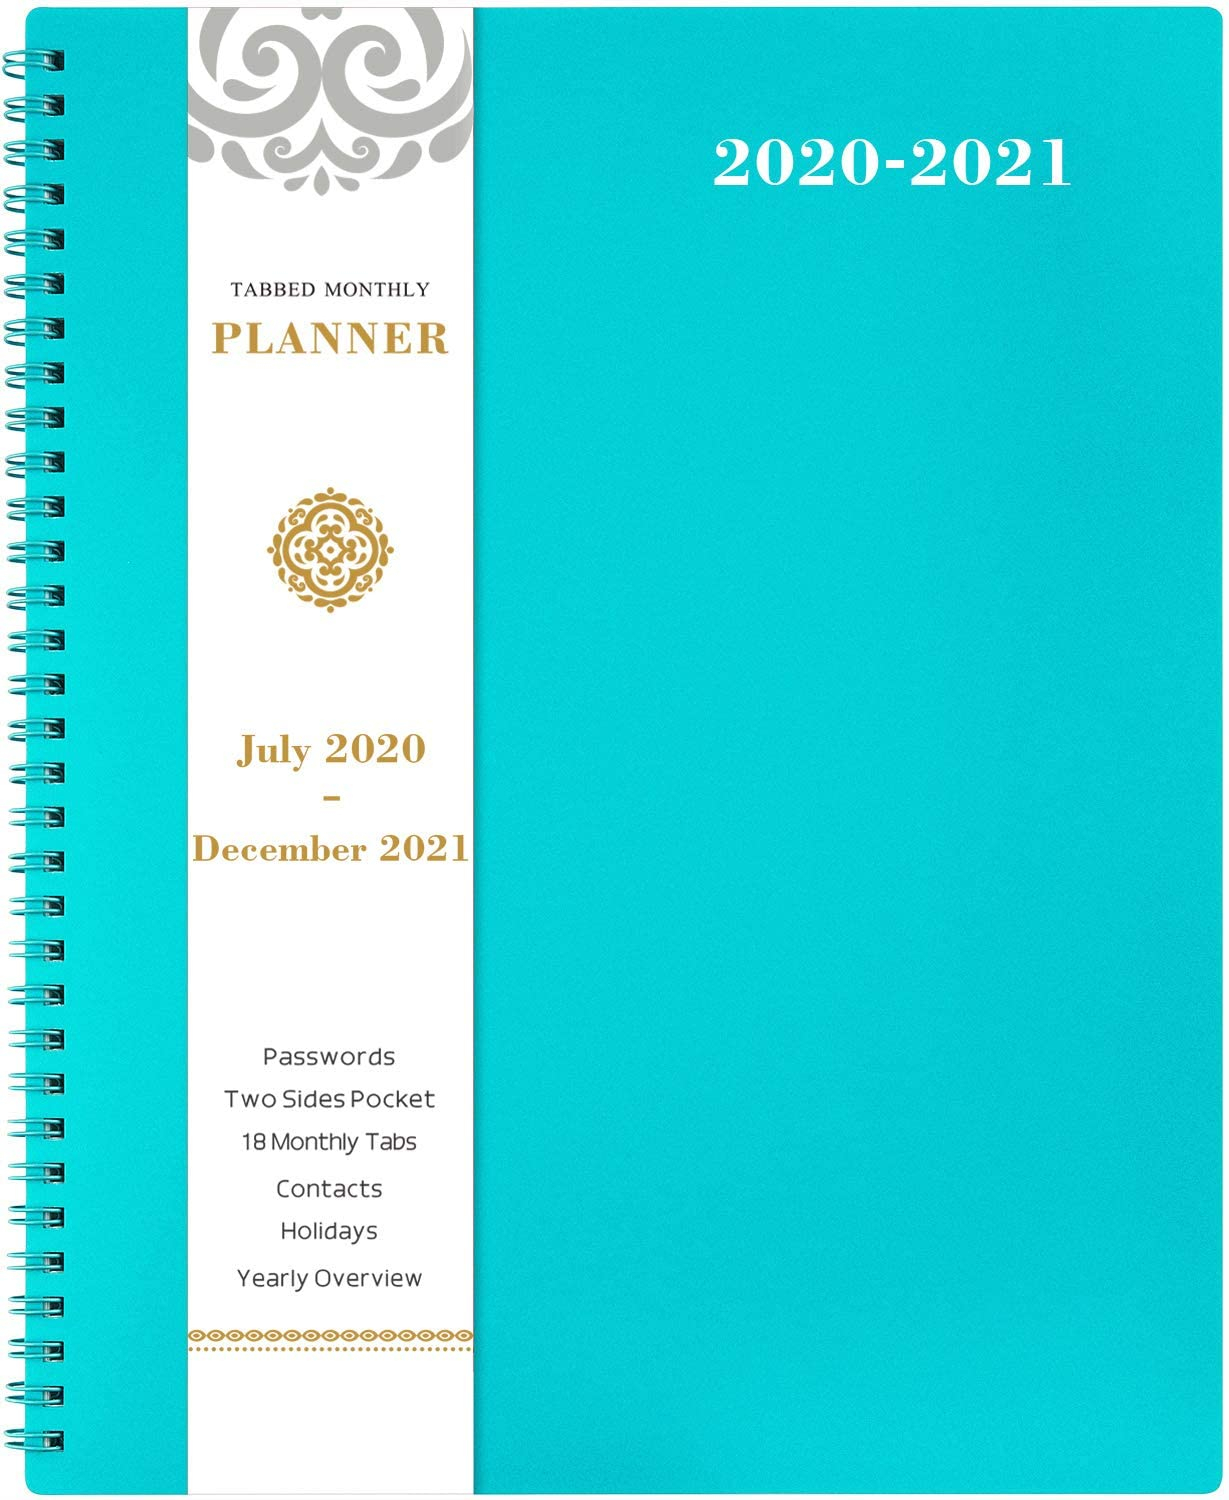 2020-2021 Monthly Planner - 18-Month Planner With Tabs throughout Monthly Planner 2021 With Pockets